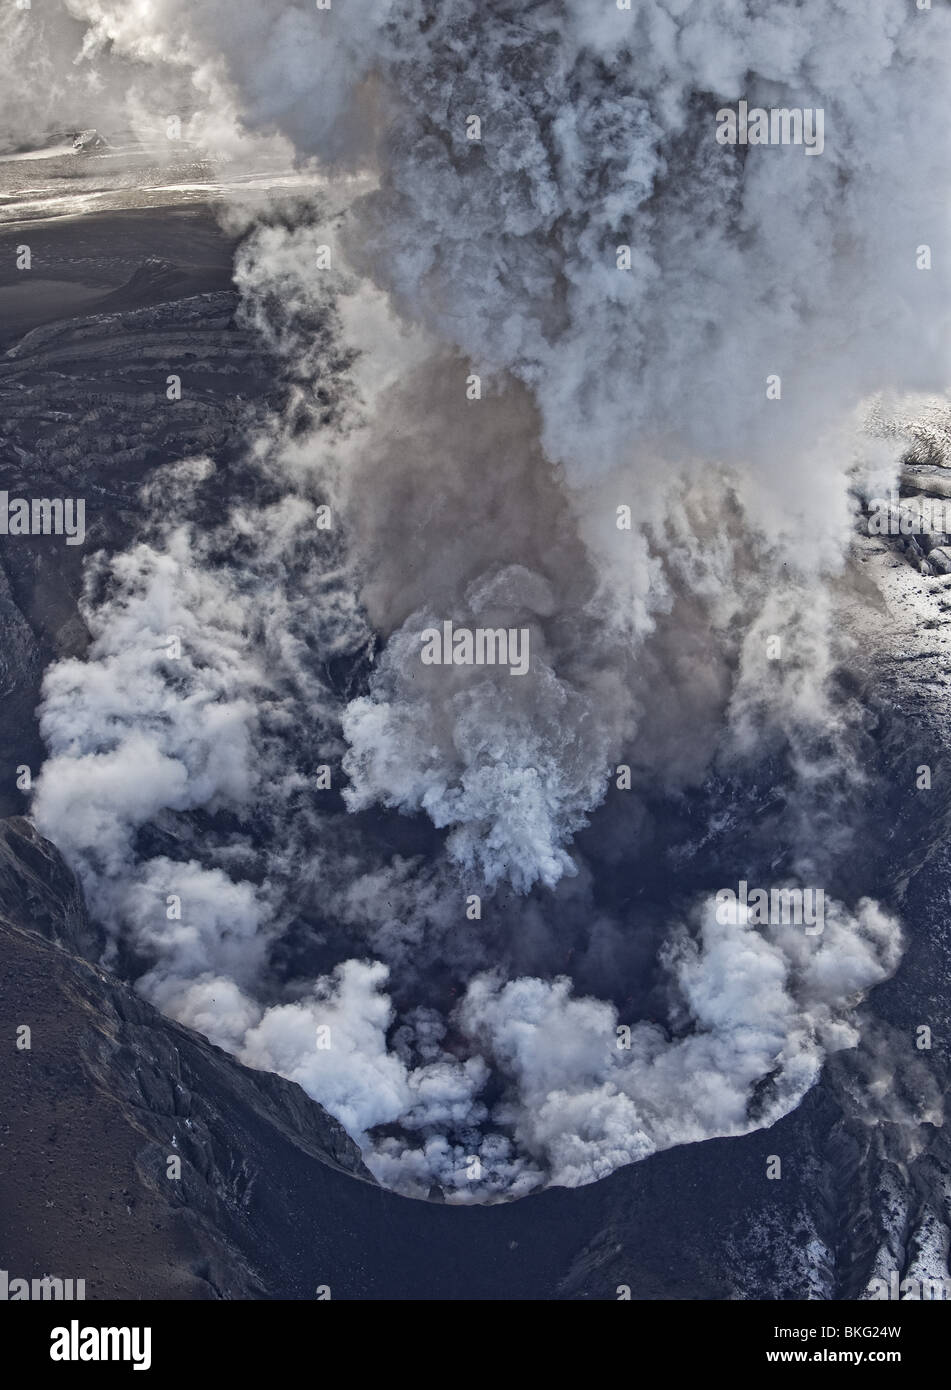 Aerial of Ash cloud from Eyjafjallajokull Volcano Eruption, Iceland - Stock Image